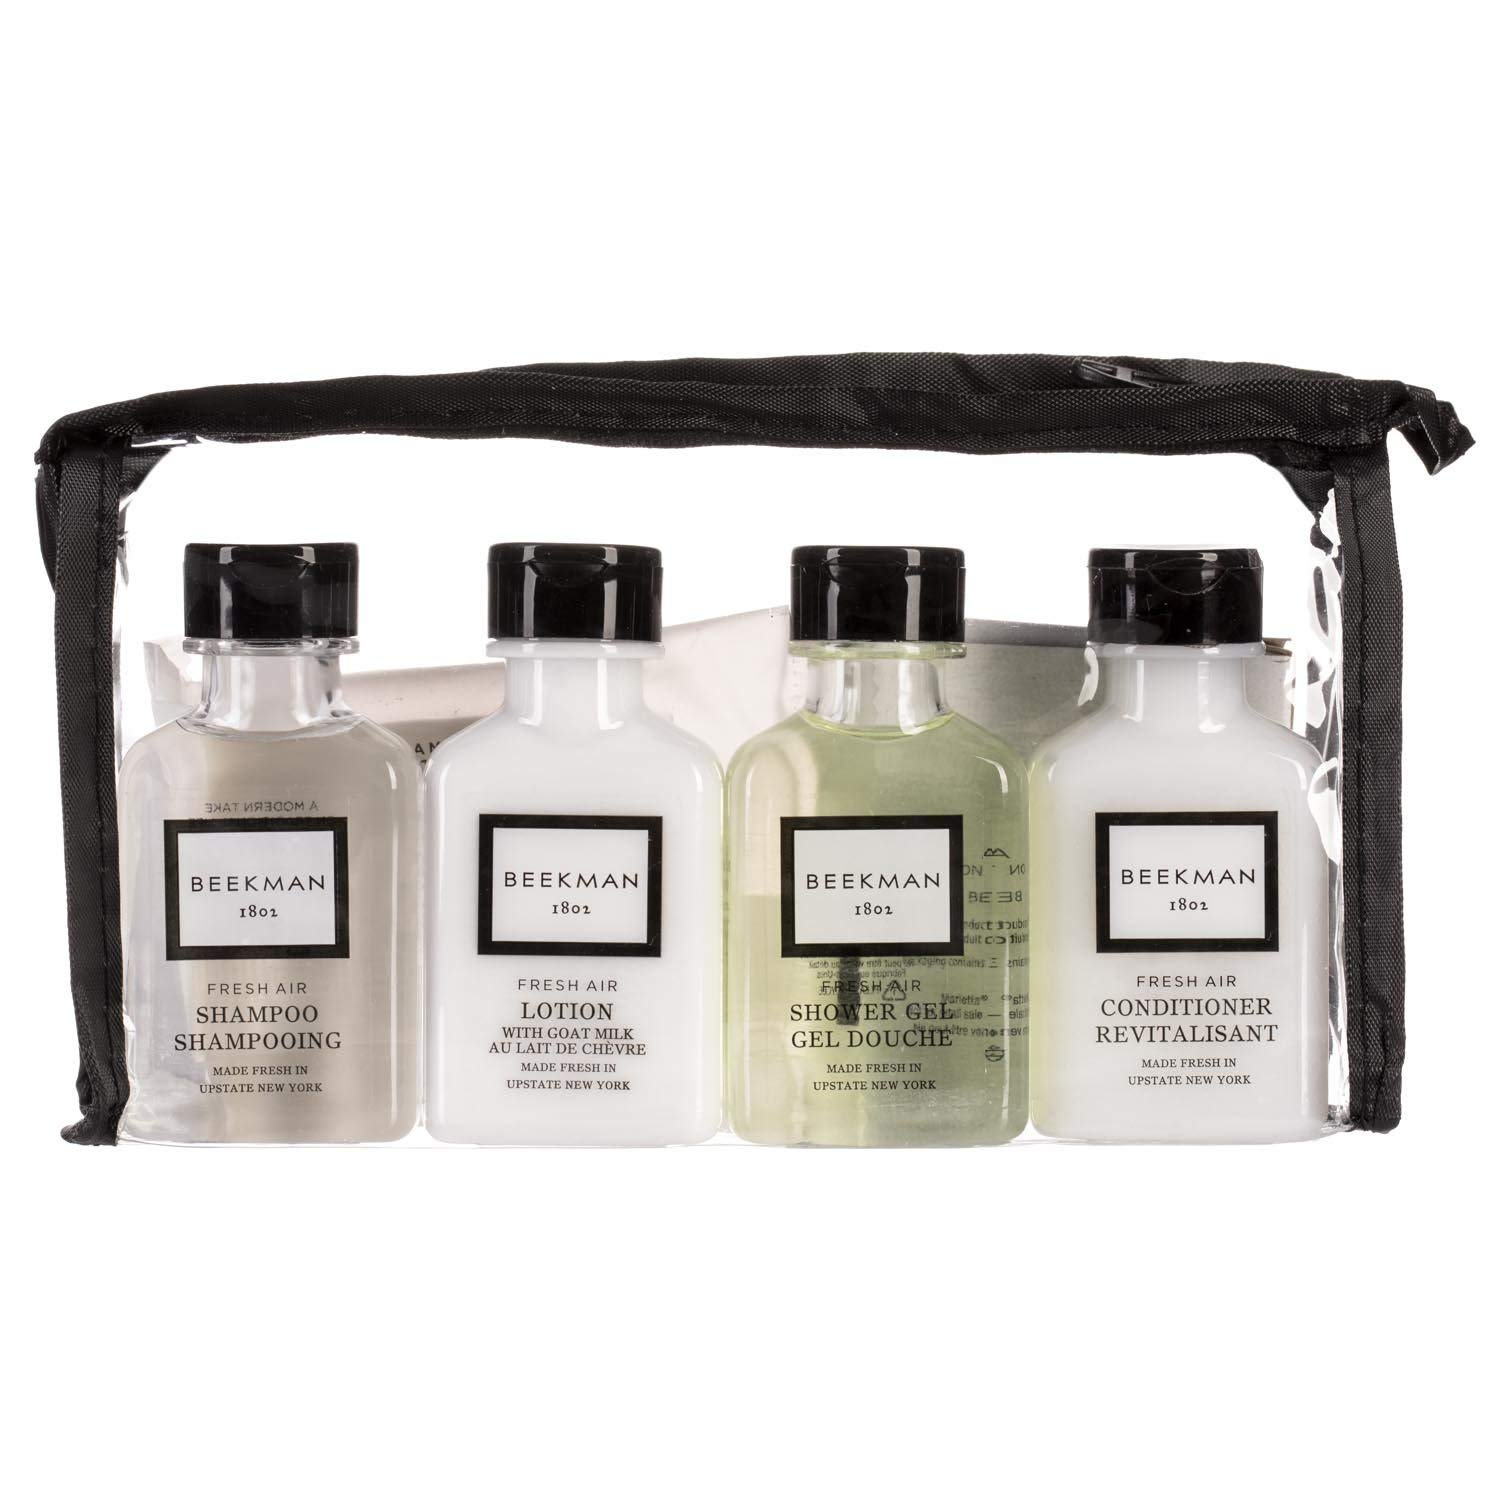 Beekman 1802 Fresh Air Goat Milk Amenity Kit - Shower Gel, Shampoo, Conditioner, Body Lotion, Face Soap And Body Soap